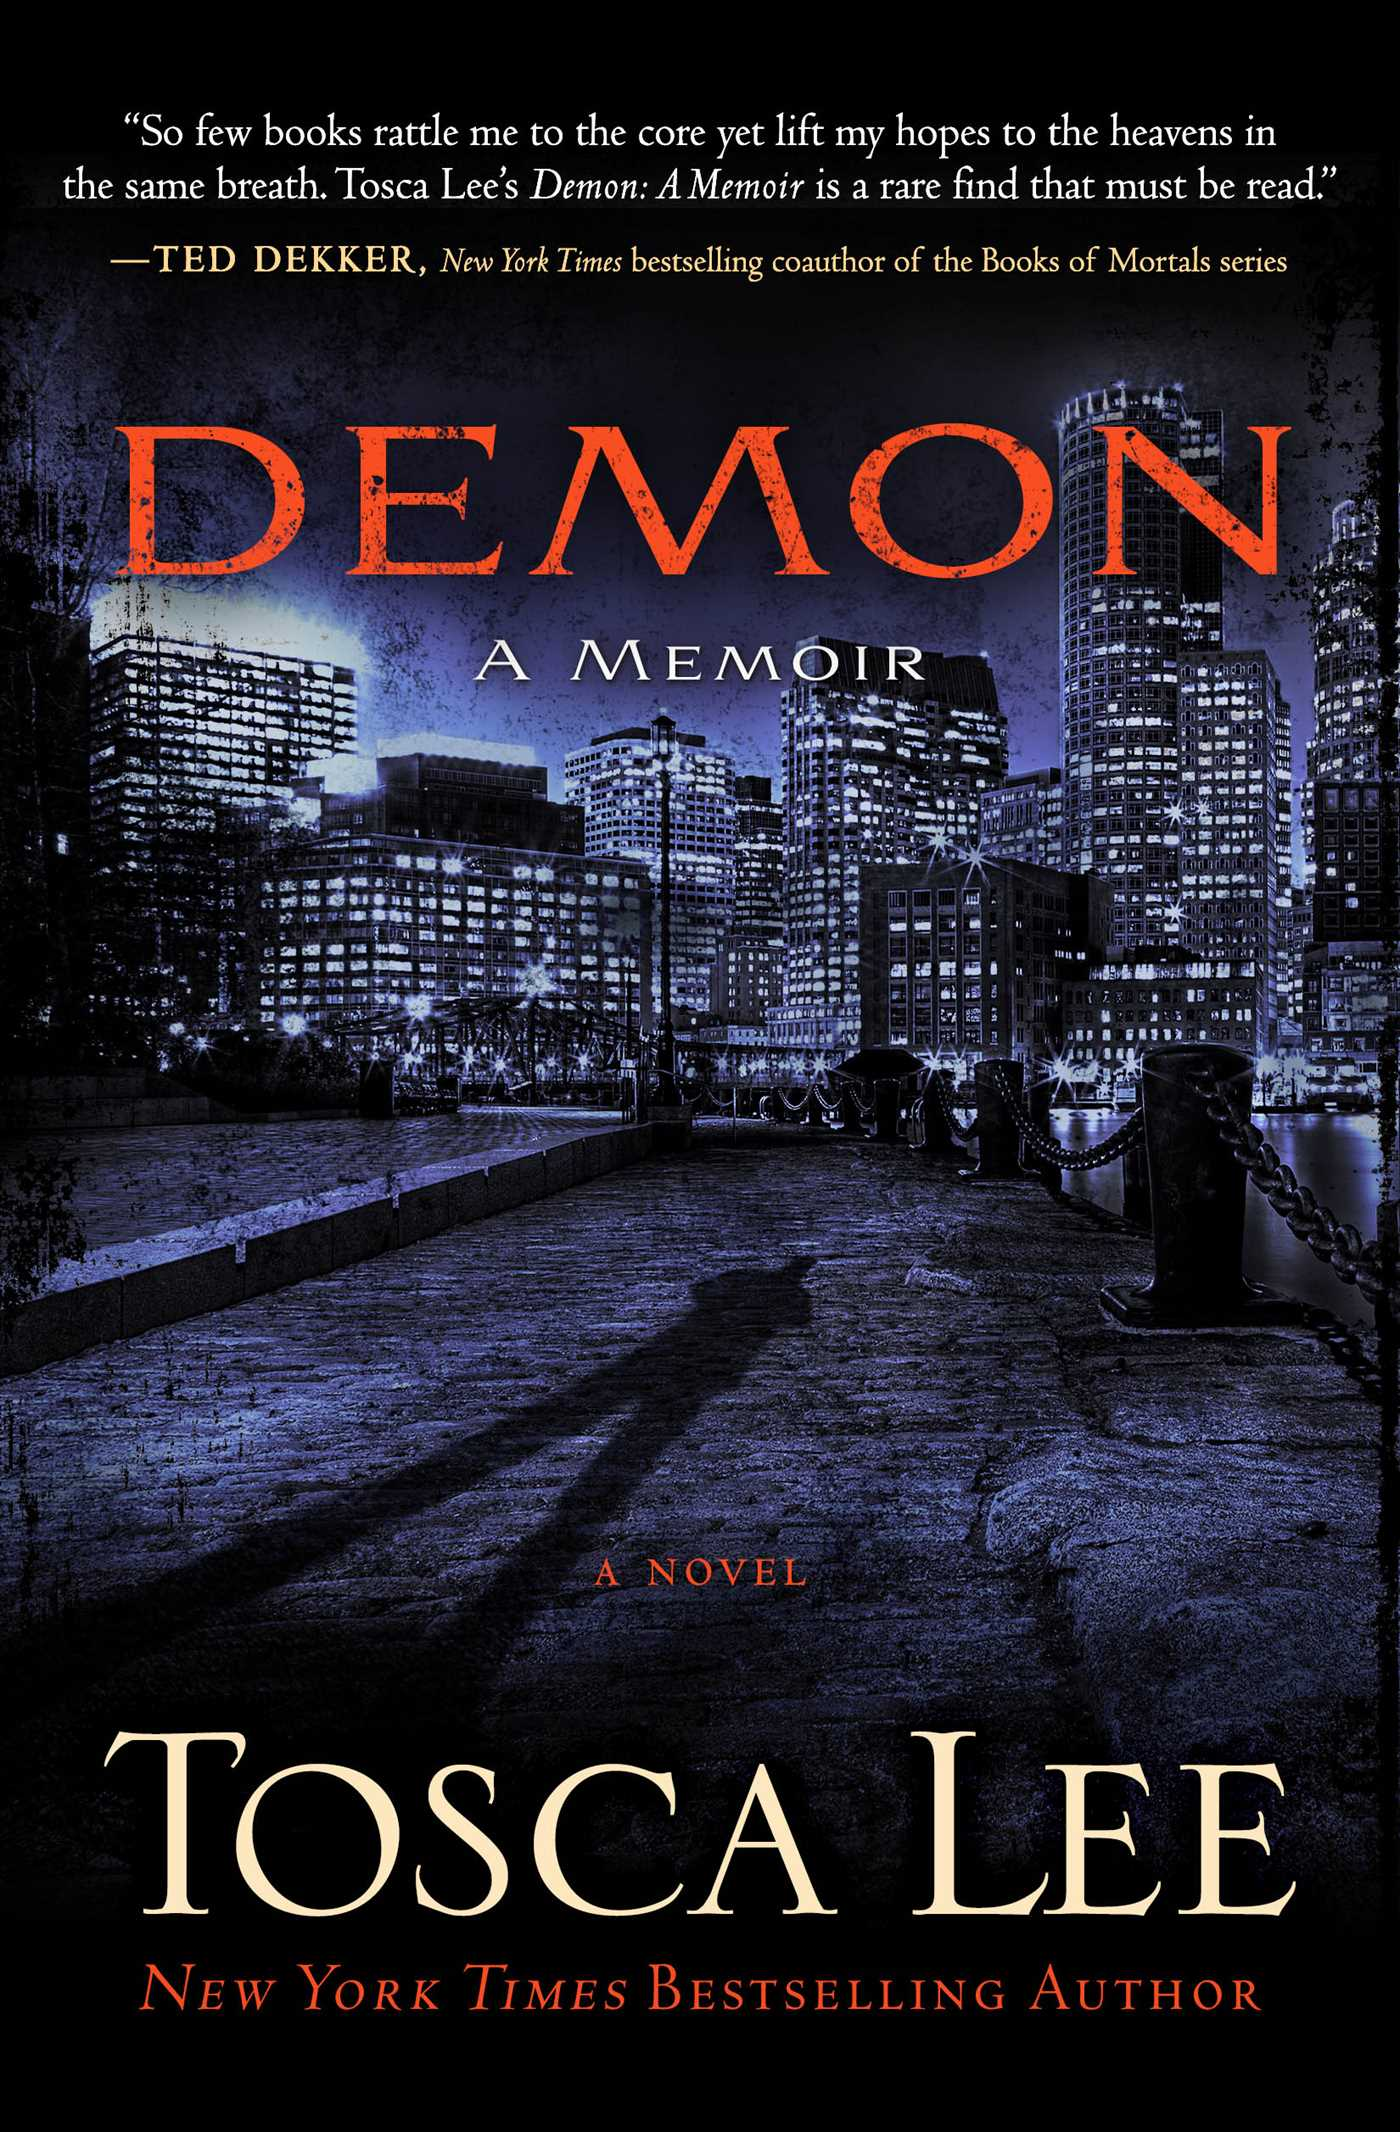 Book Cover Image (jpg): Demon: A Memoir